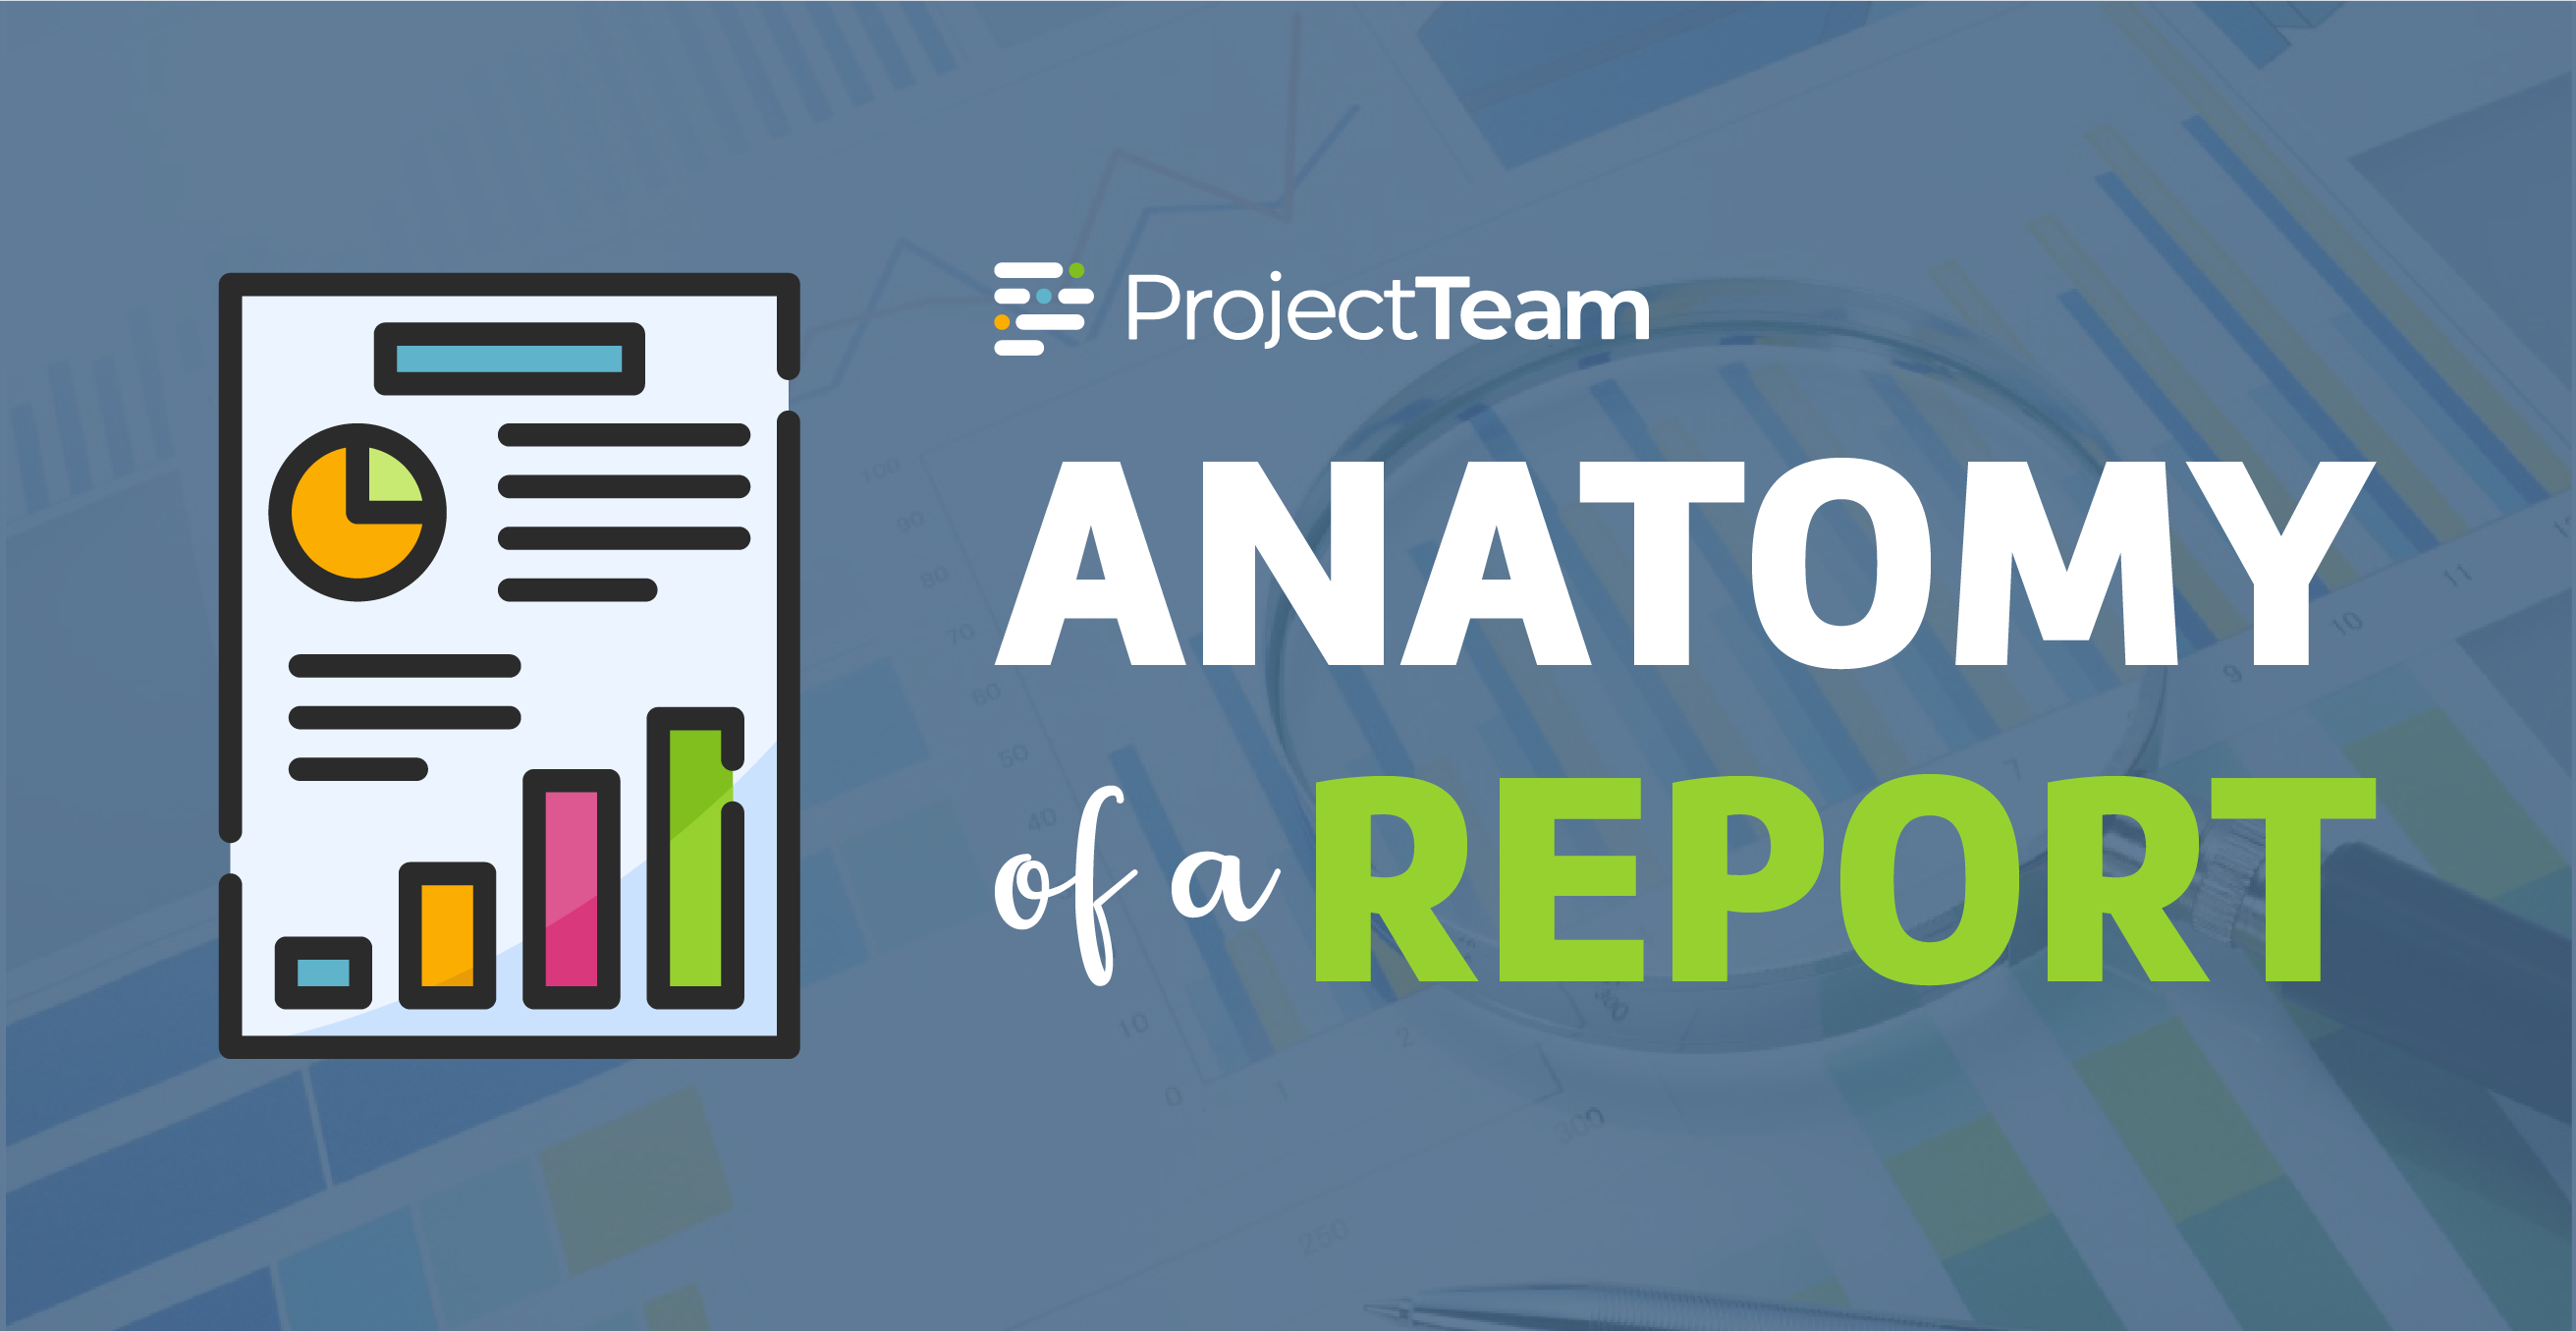 [Infographic] Anatomy of a Report